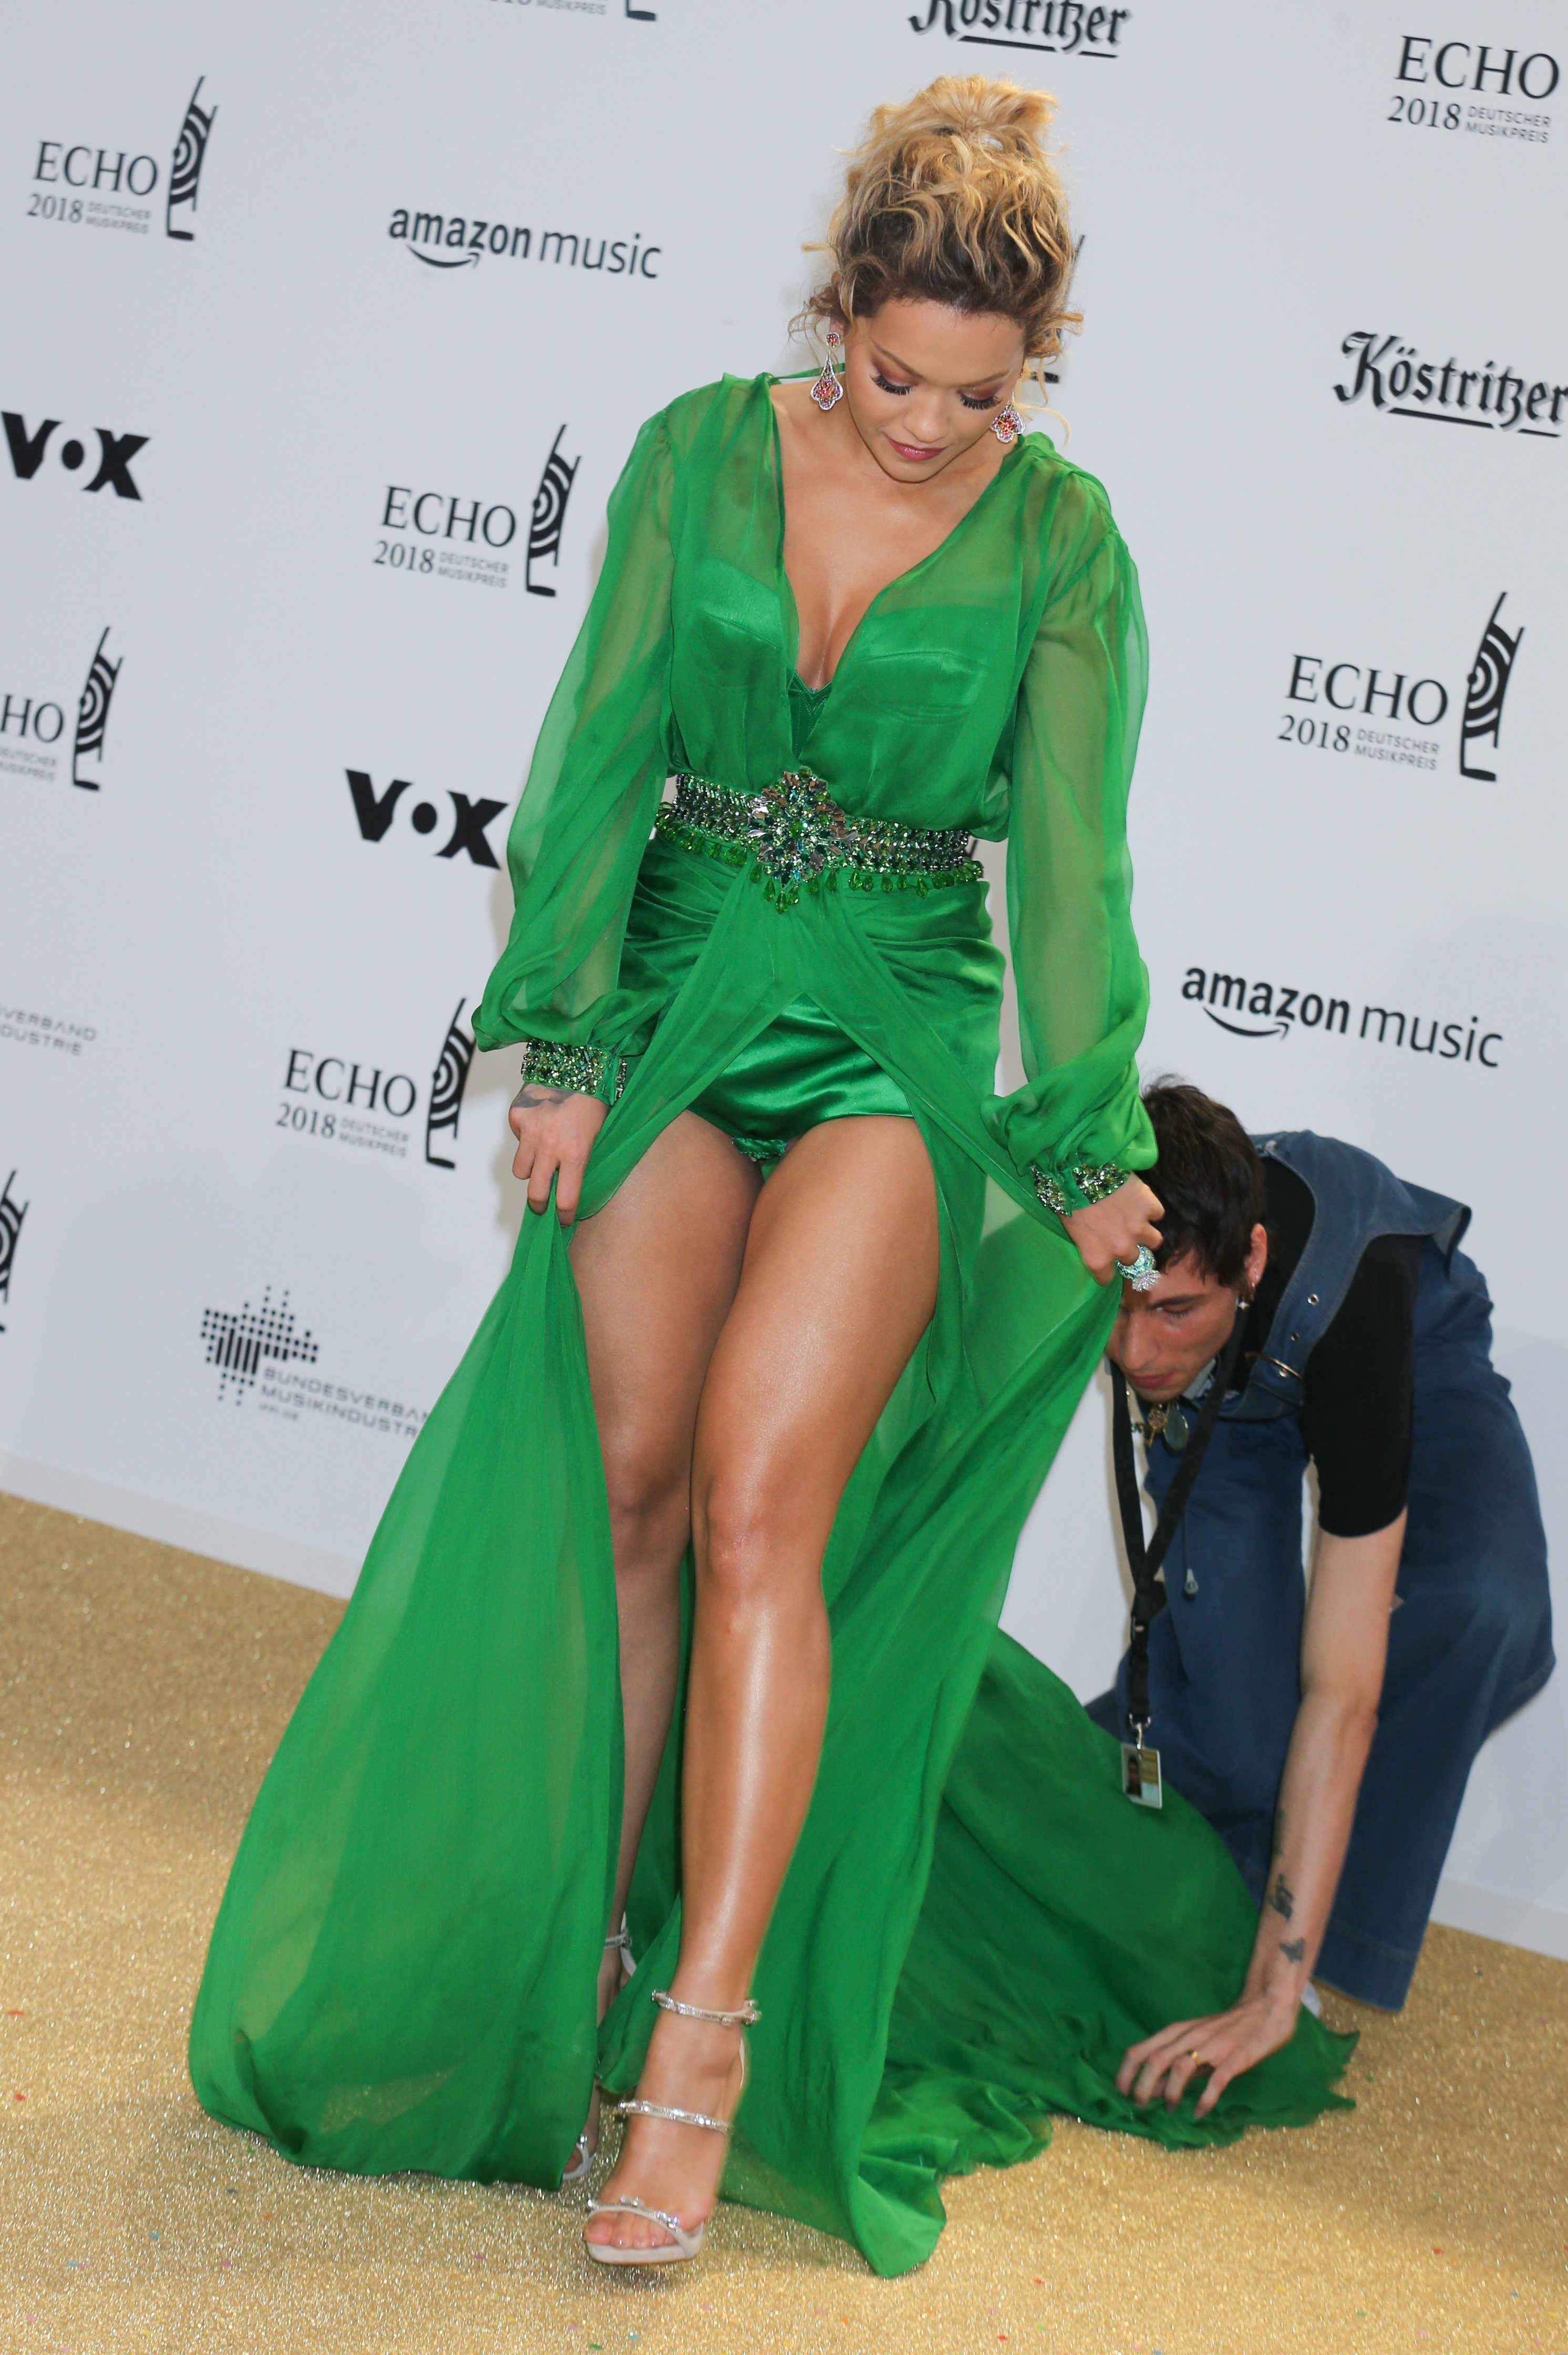 Rita Ora Echo Music Awards 2018 at the Messe Berlin, Arrivals, Berlin, Germany - 12 Apr 2018, Image: 368415941, License: Rights-managed, Restrictions: , Model Release: no, Credit line: Profimedia, TEMP Rex Features